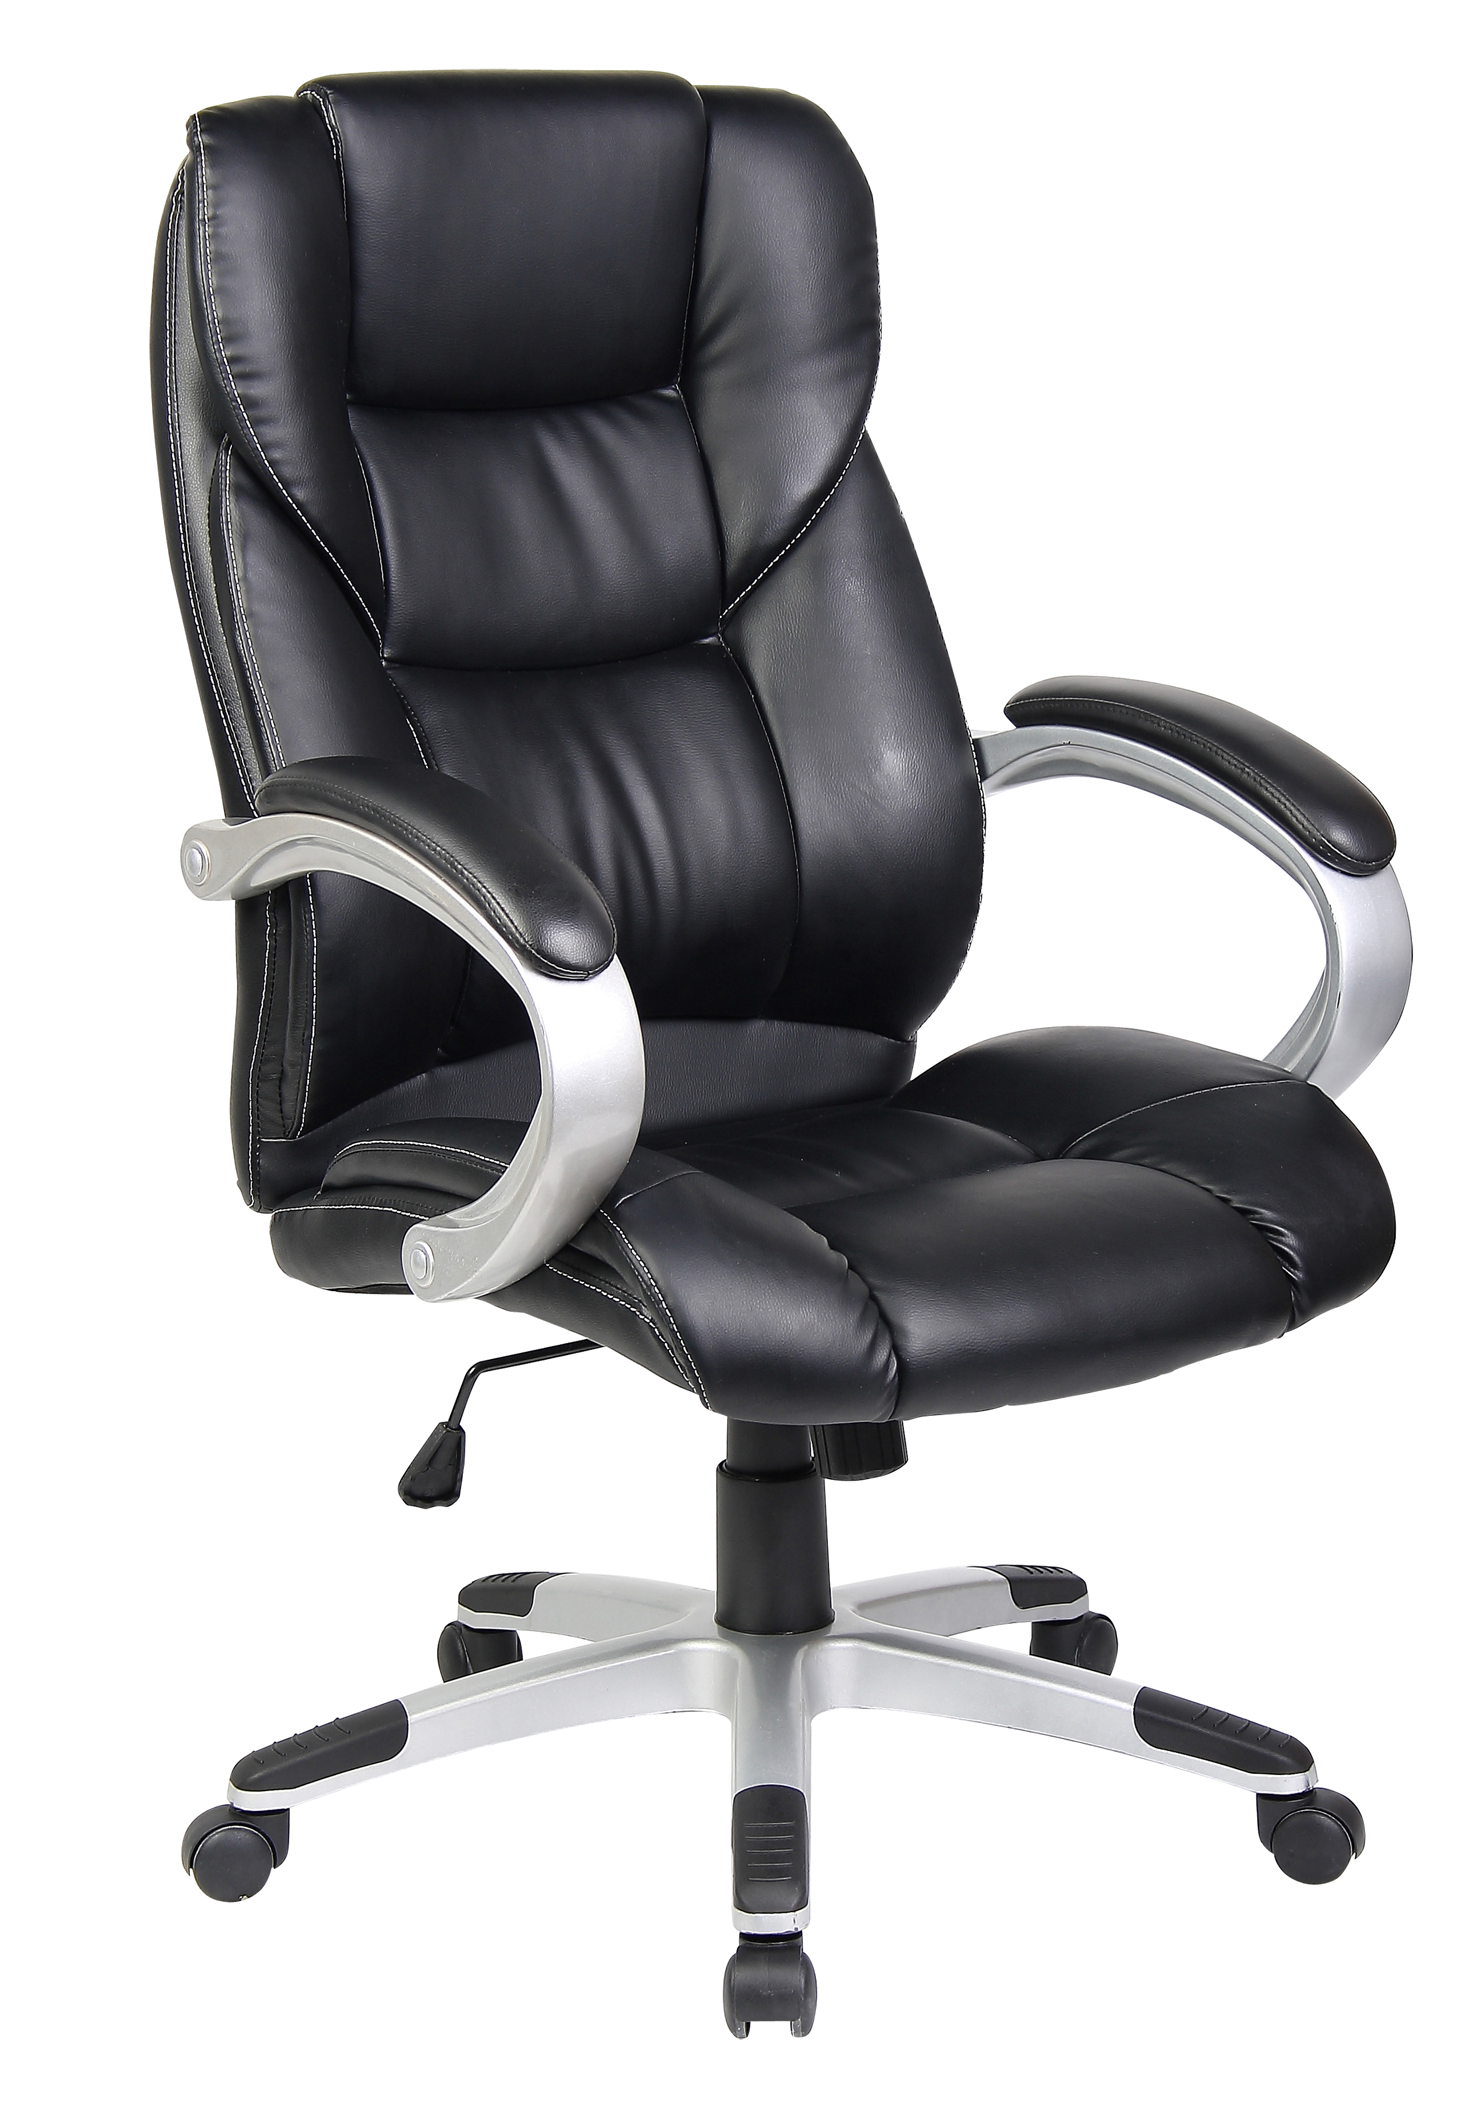 Executive Office Furniture: QUALITY SWIVEL PU LEATHER EXECUTIVE OFFICE FURNITUE